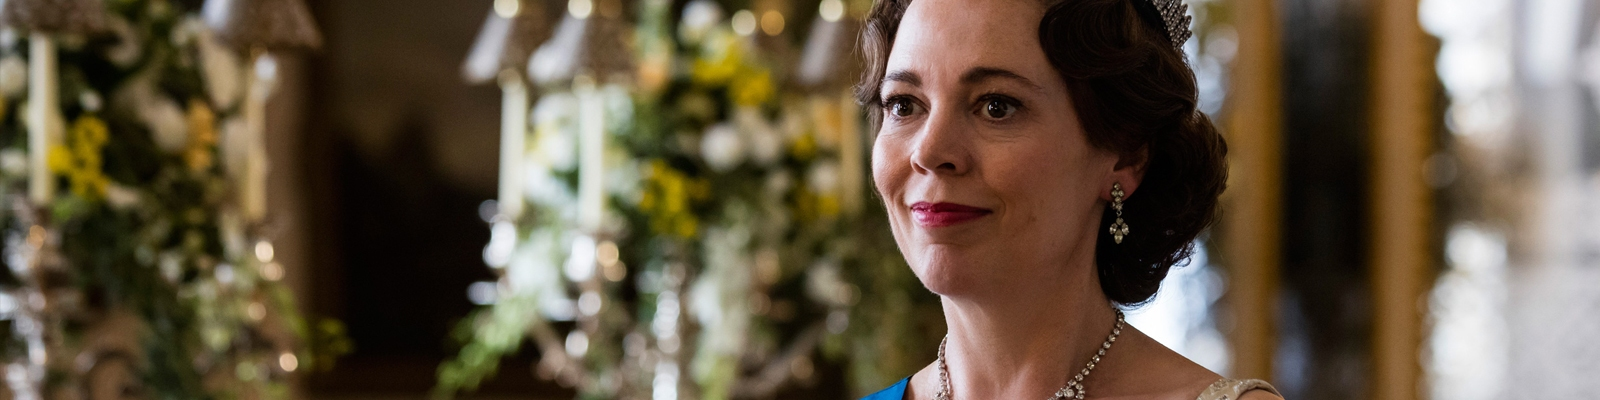 'The Crown' Still Sparkles As Netflix's Prized Jewel In Its Third Season